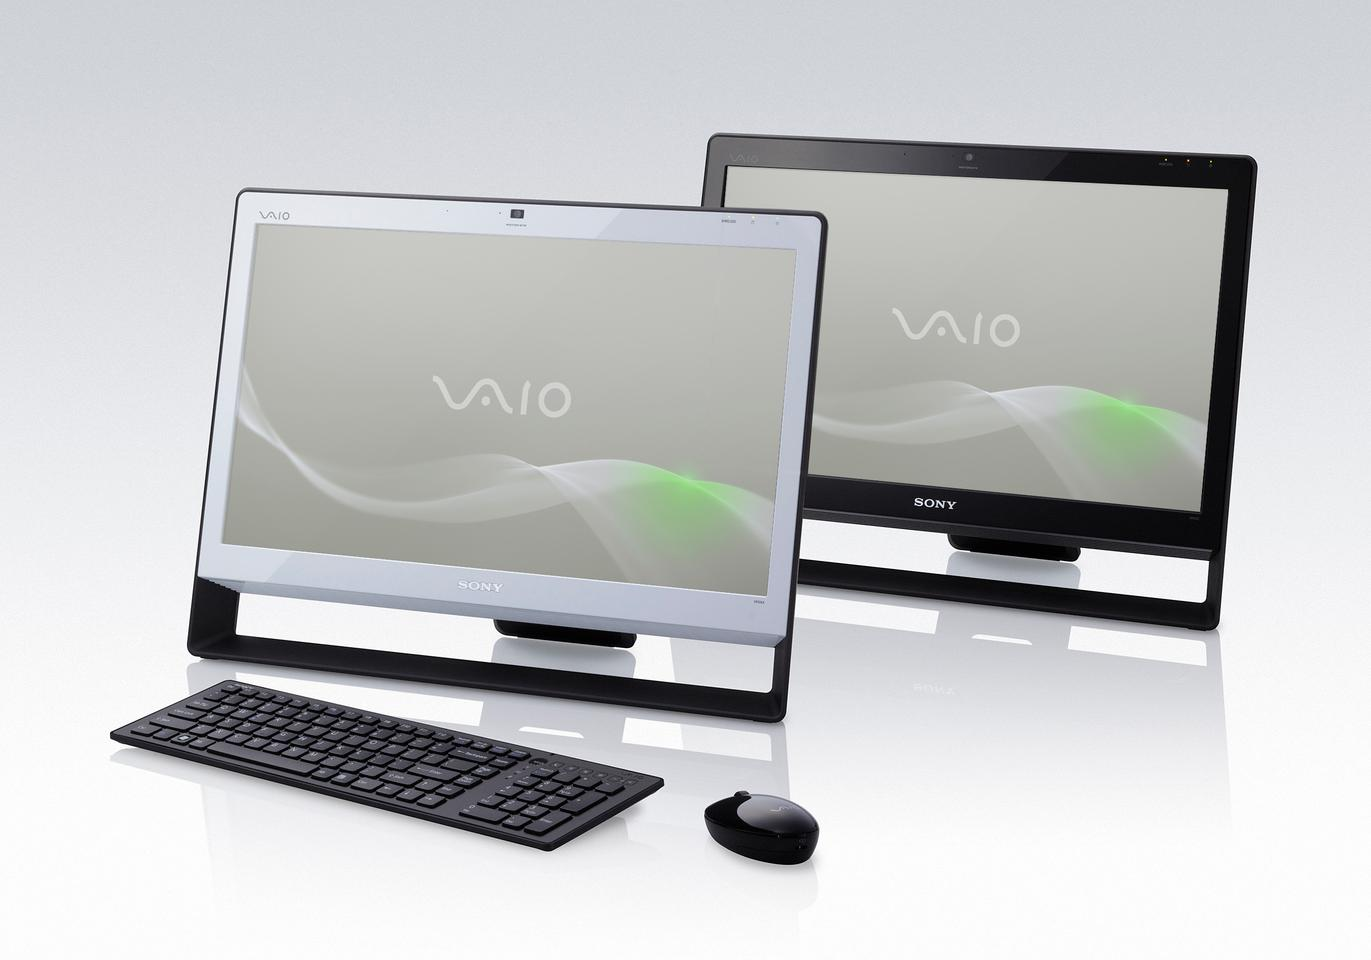 The VAIO J Series PC has a 21.5 inch multi-touch HD display and is powered by the latest Intel Core processors and GeForce graphics